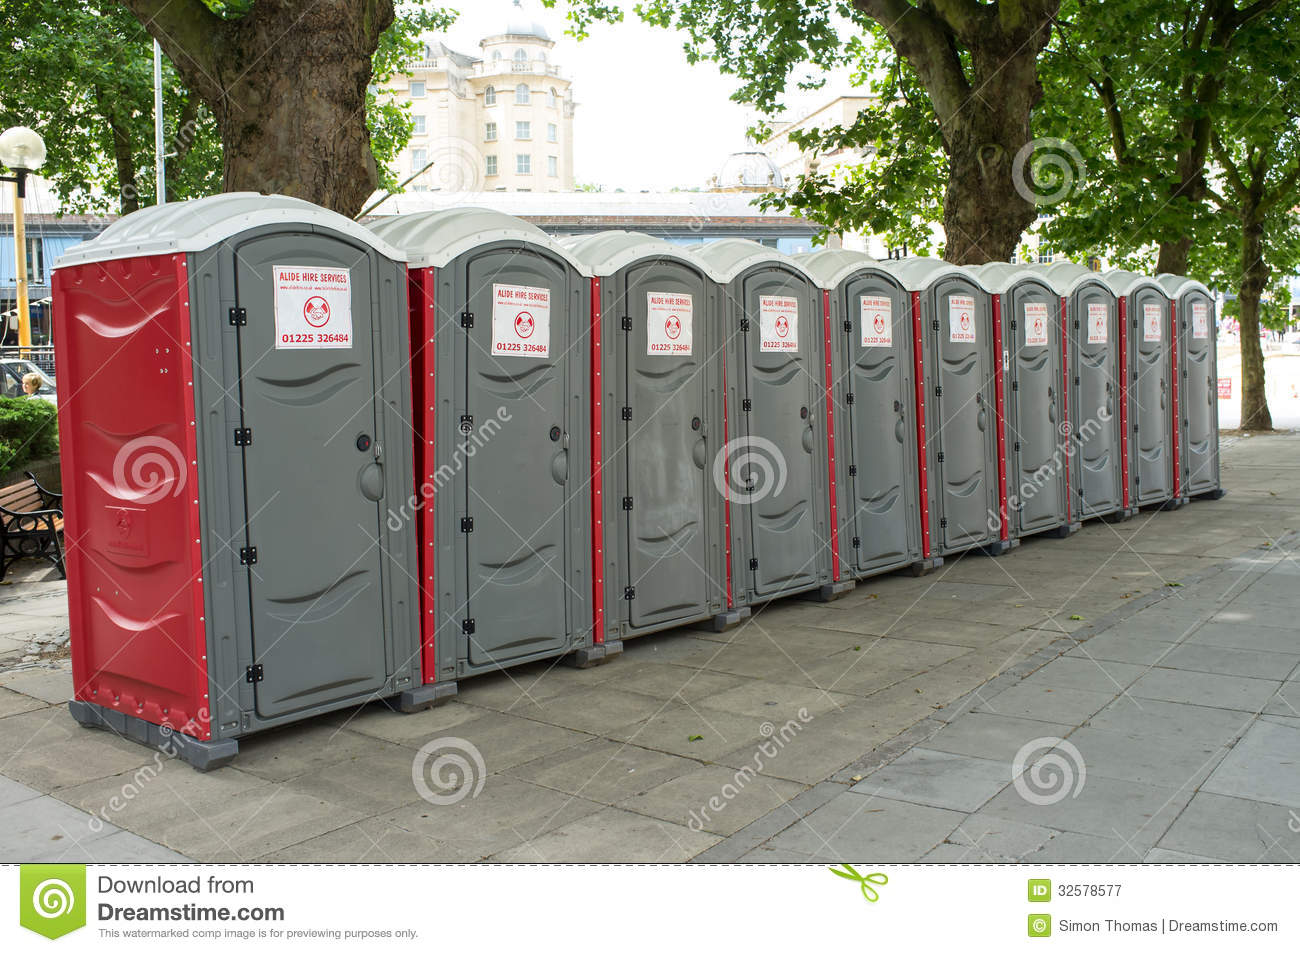 Transsexual toilets in united kingdom